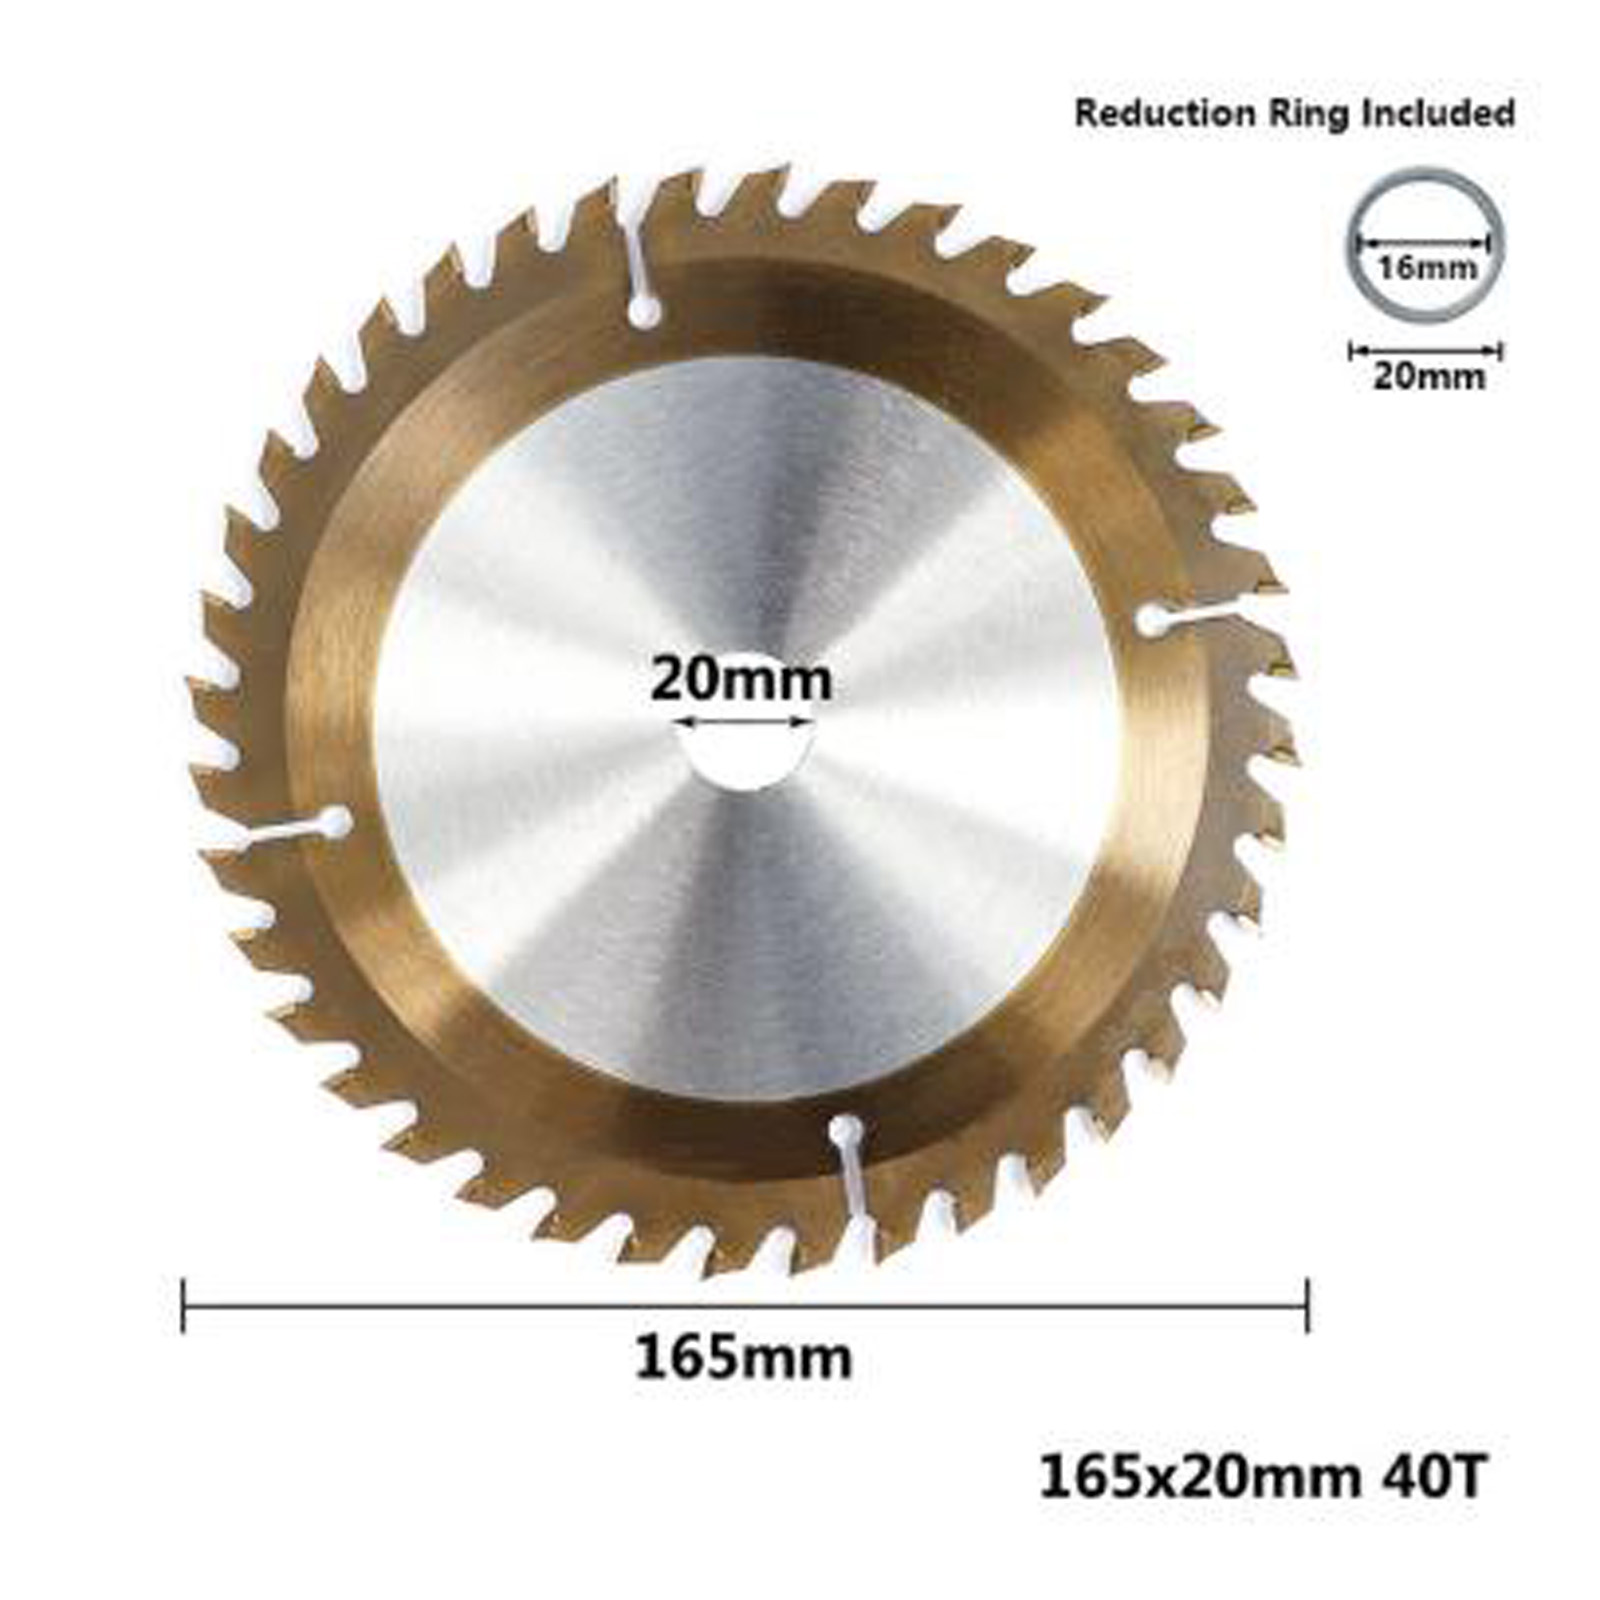 24/40/48/80T Wood Carving Disc Circular Saw Blade Disc 160/165/185mm Cutter Metal Plastic For Angle Grinder Metal Cutting Disc